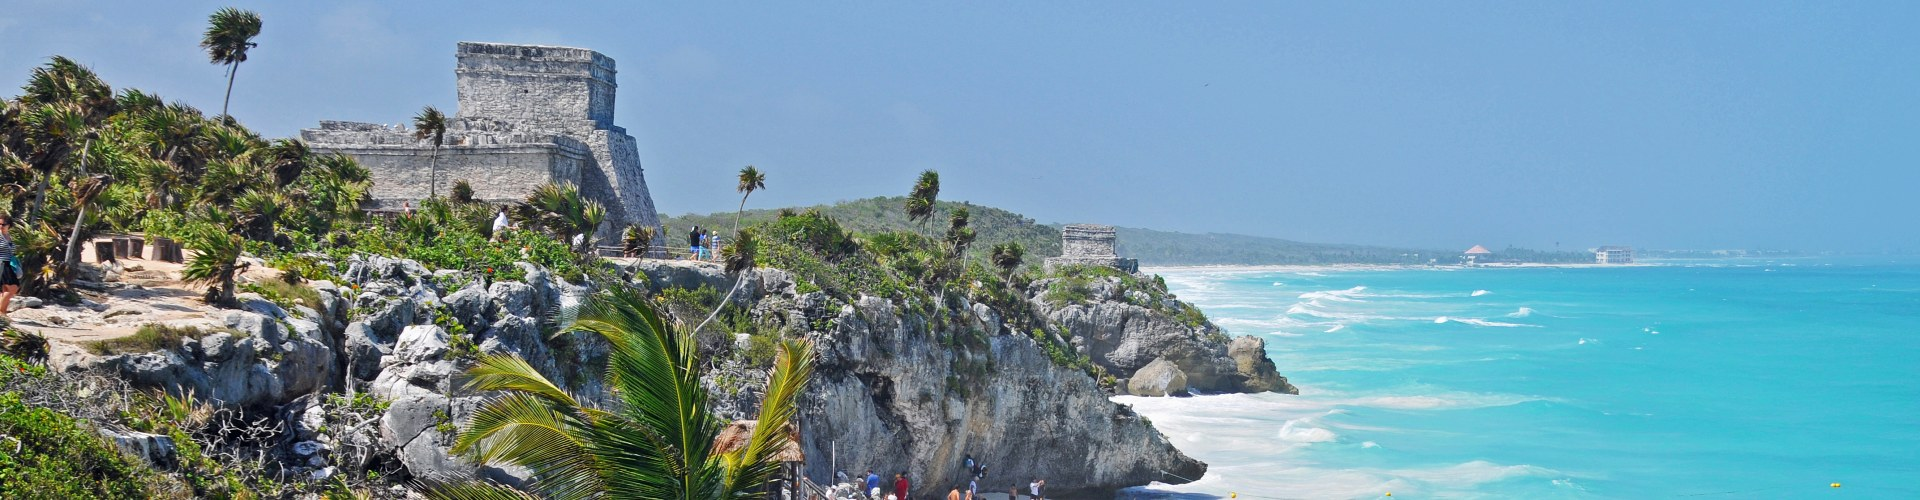 Tulum, Mexiko Rundreise